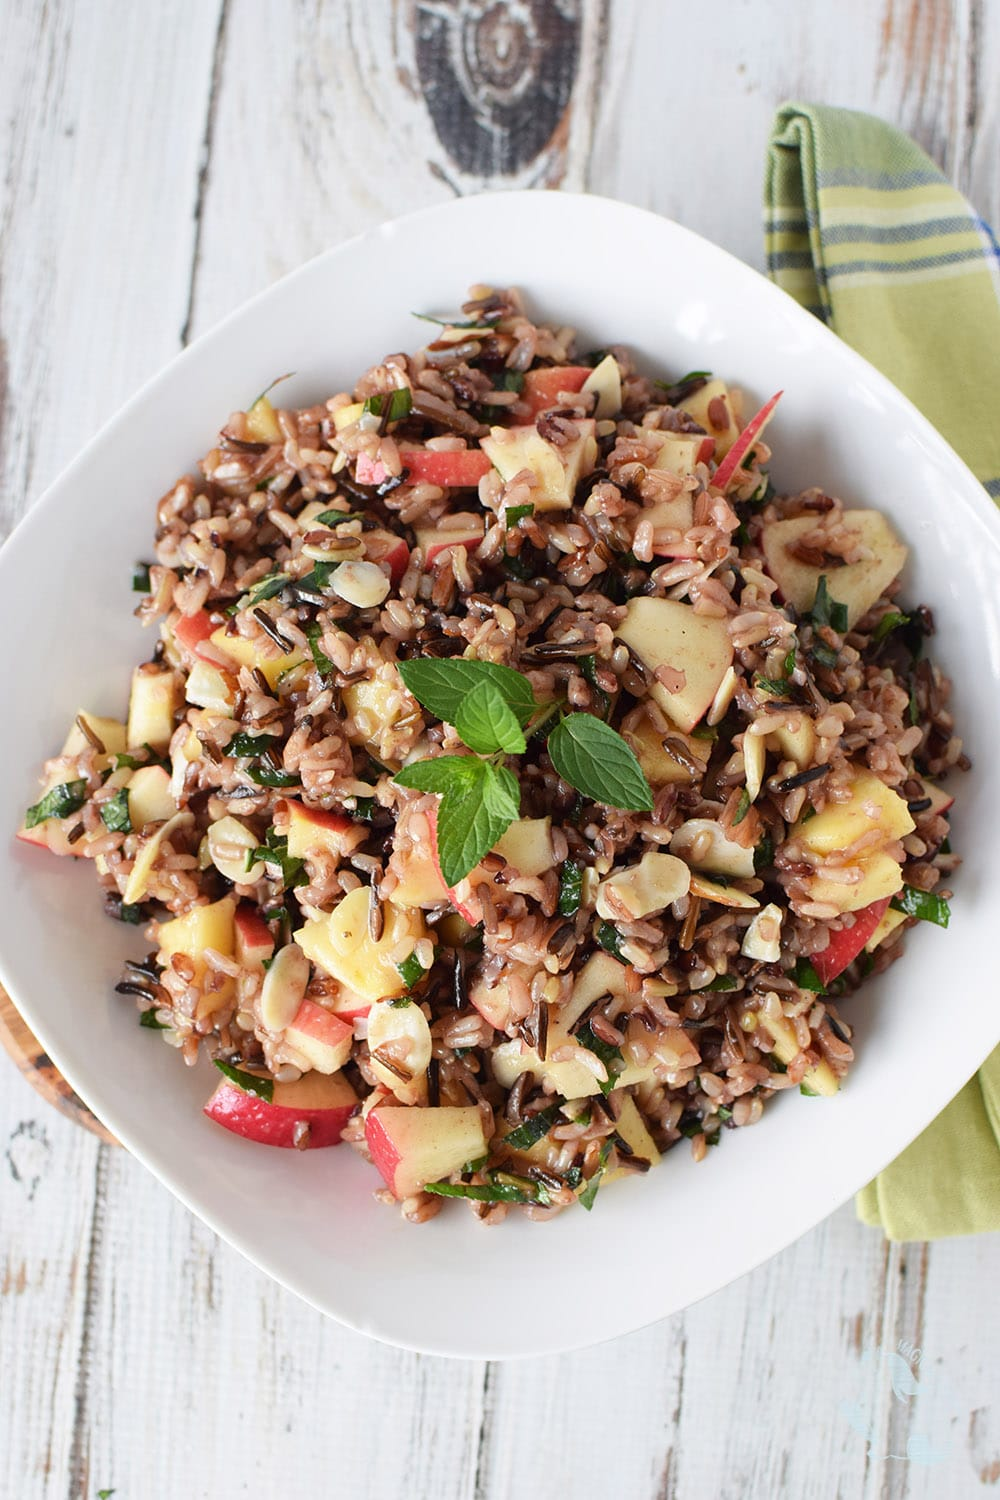 Wild rice salad with apples, honey, and mint